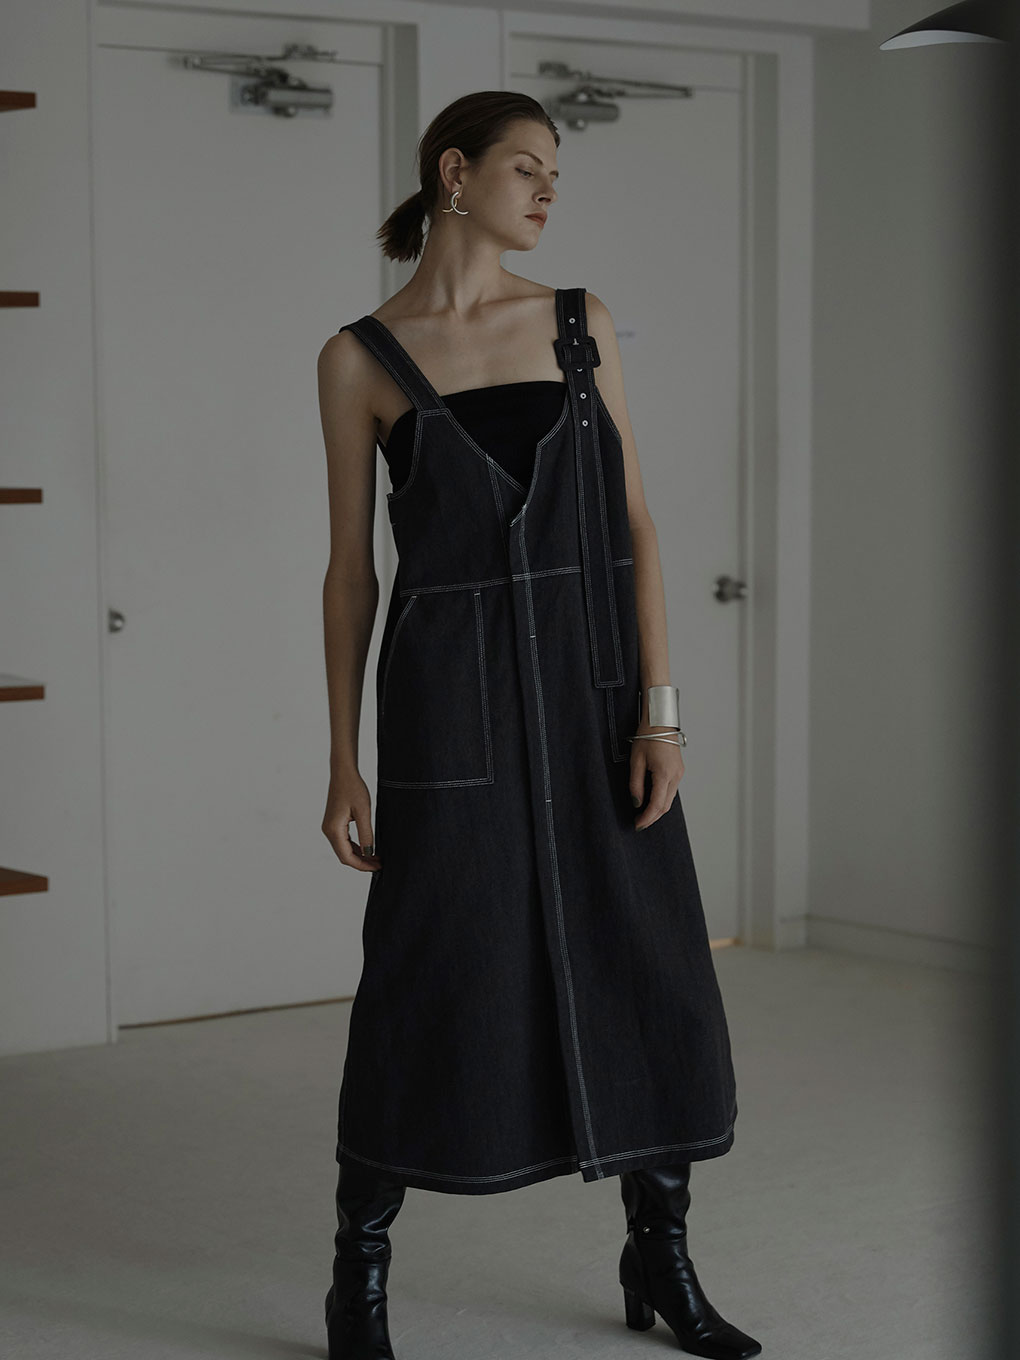 SHORDITCH OVER DRESS